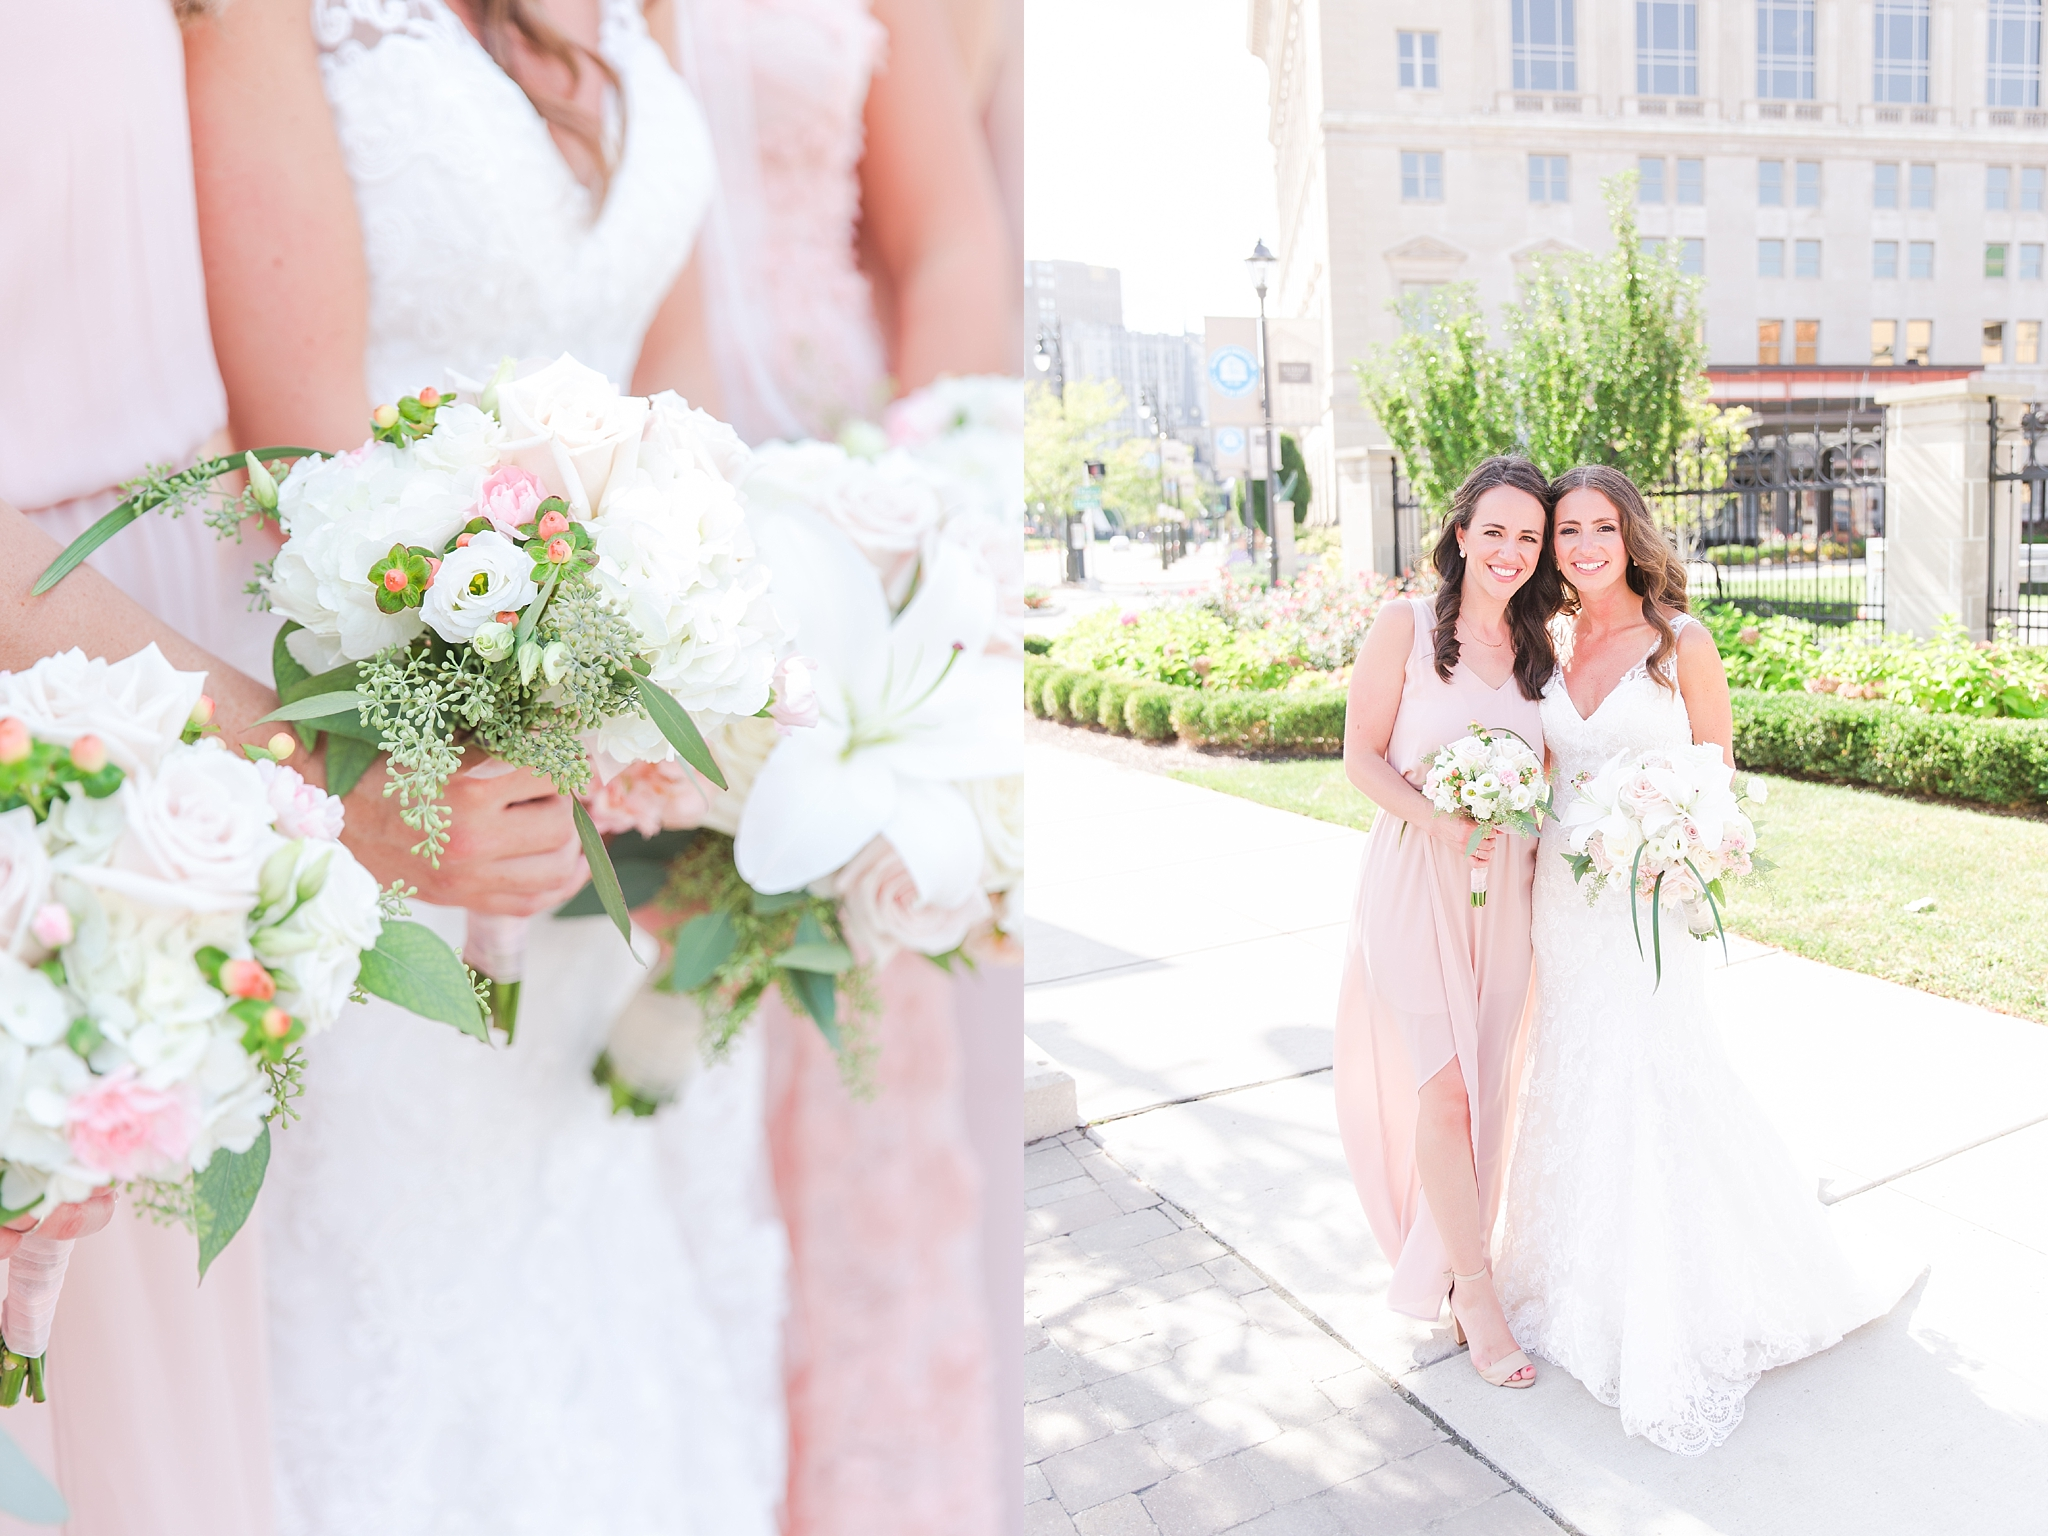 playful-blush-navy-wedding-photos-the-detroit-athletic-club-in-detroit-michigan-by-courtney-carolyn-photography_0018.jpg